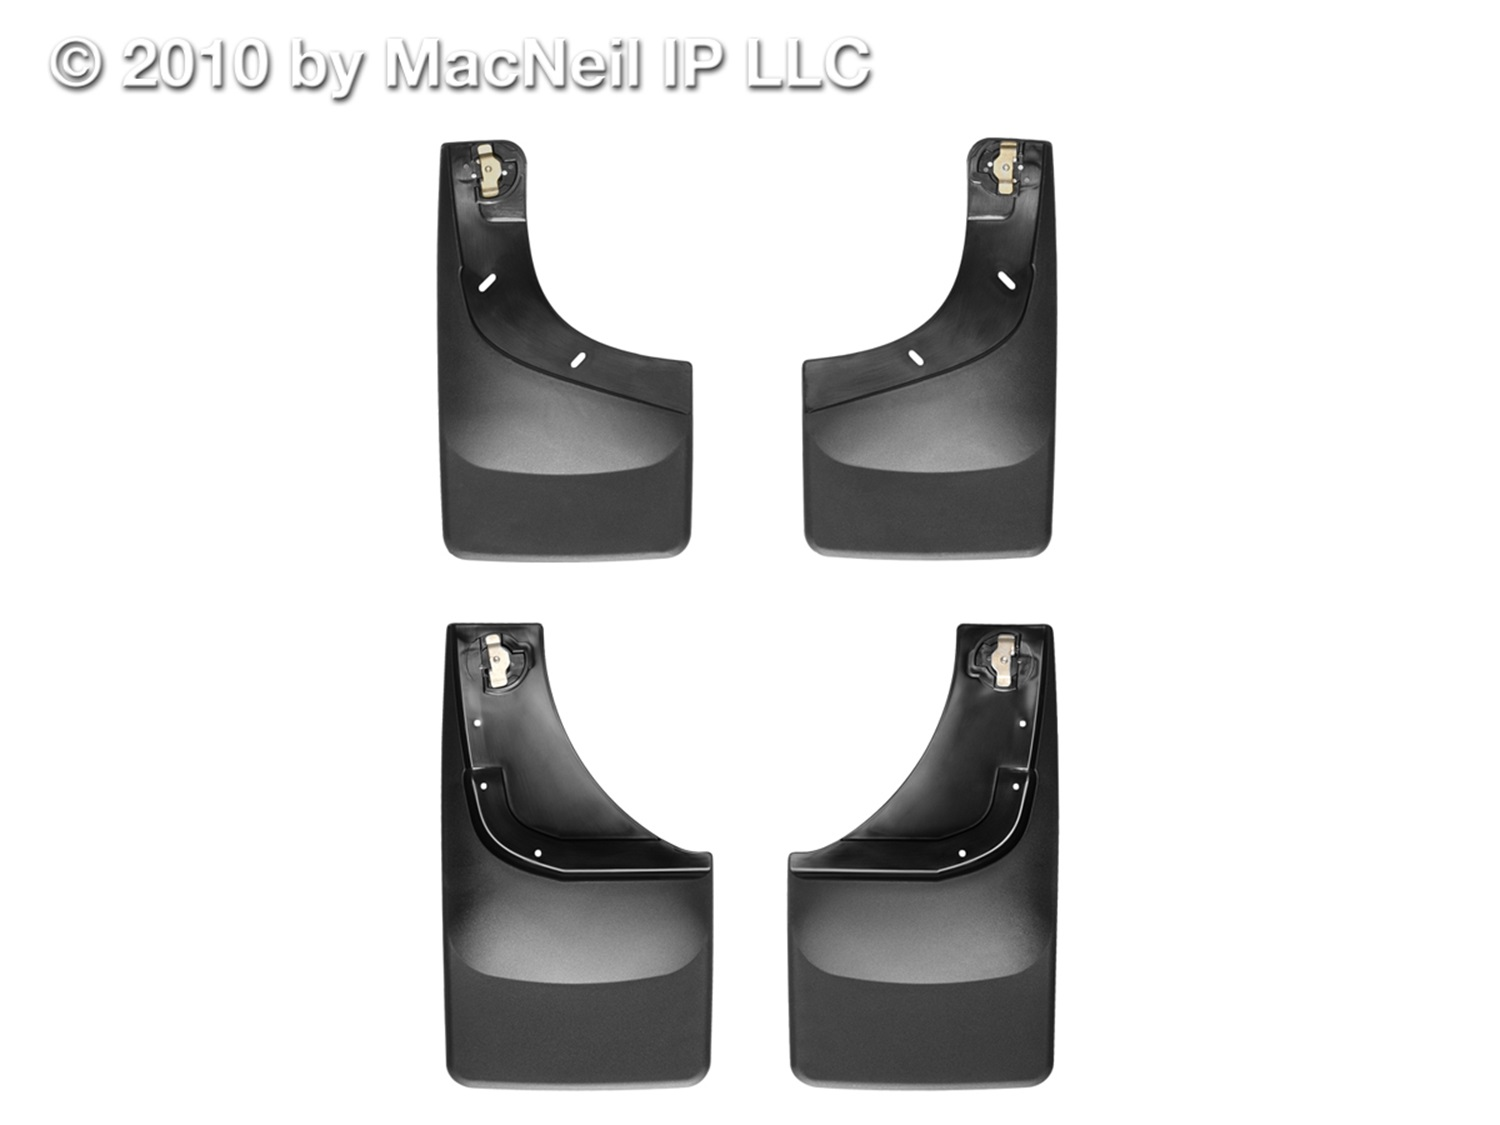 WeatherTech 110002-120002 No Drill Mudflaps, Black